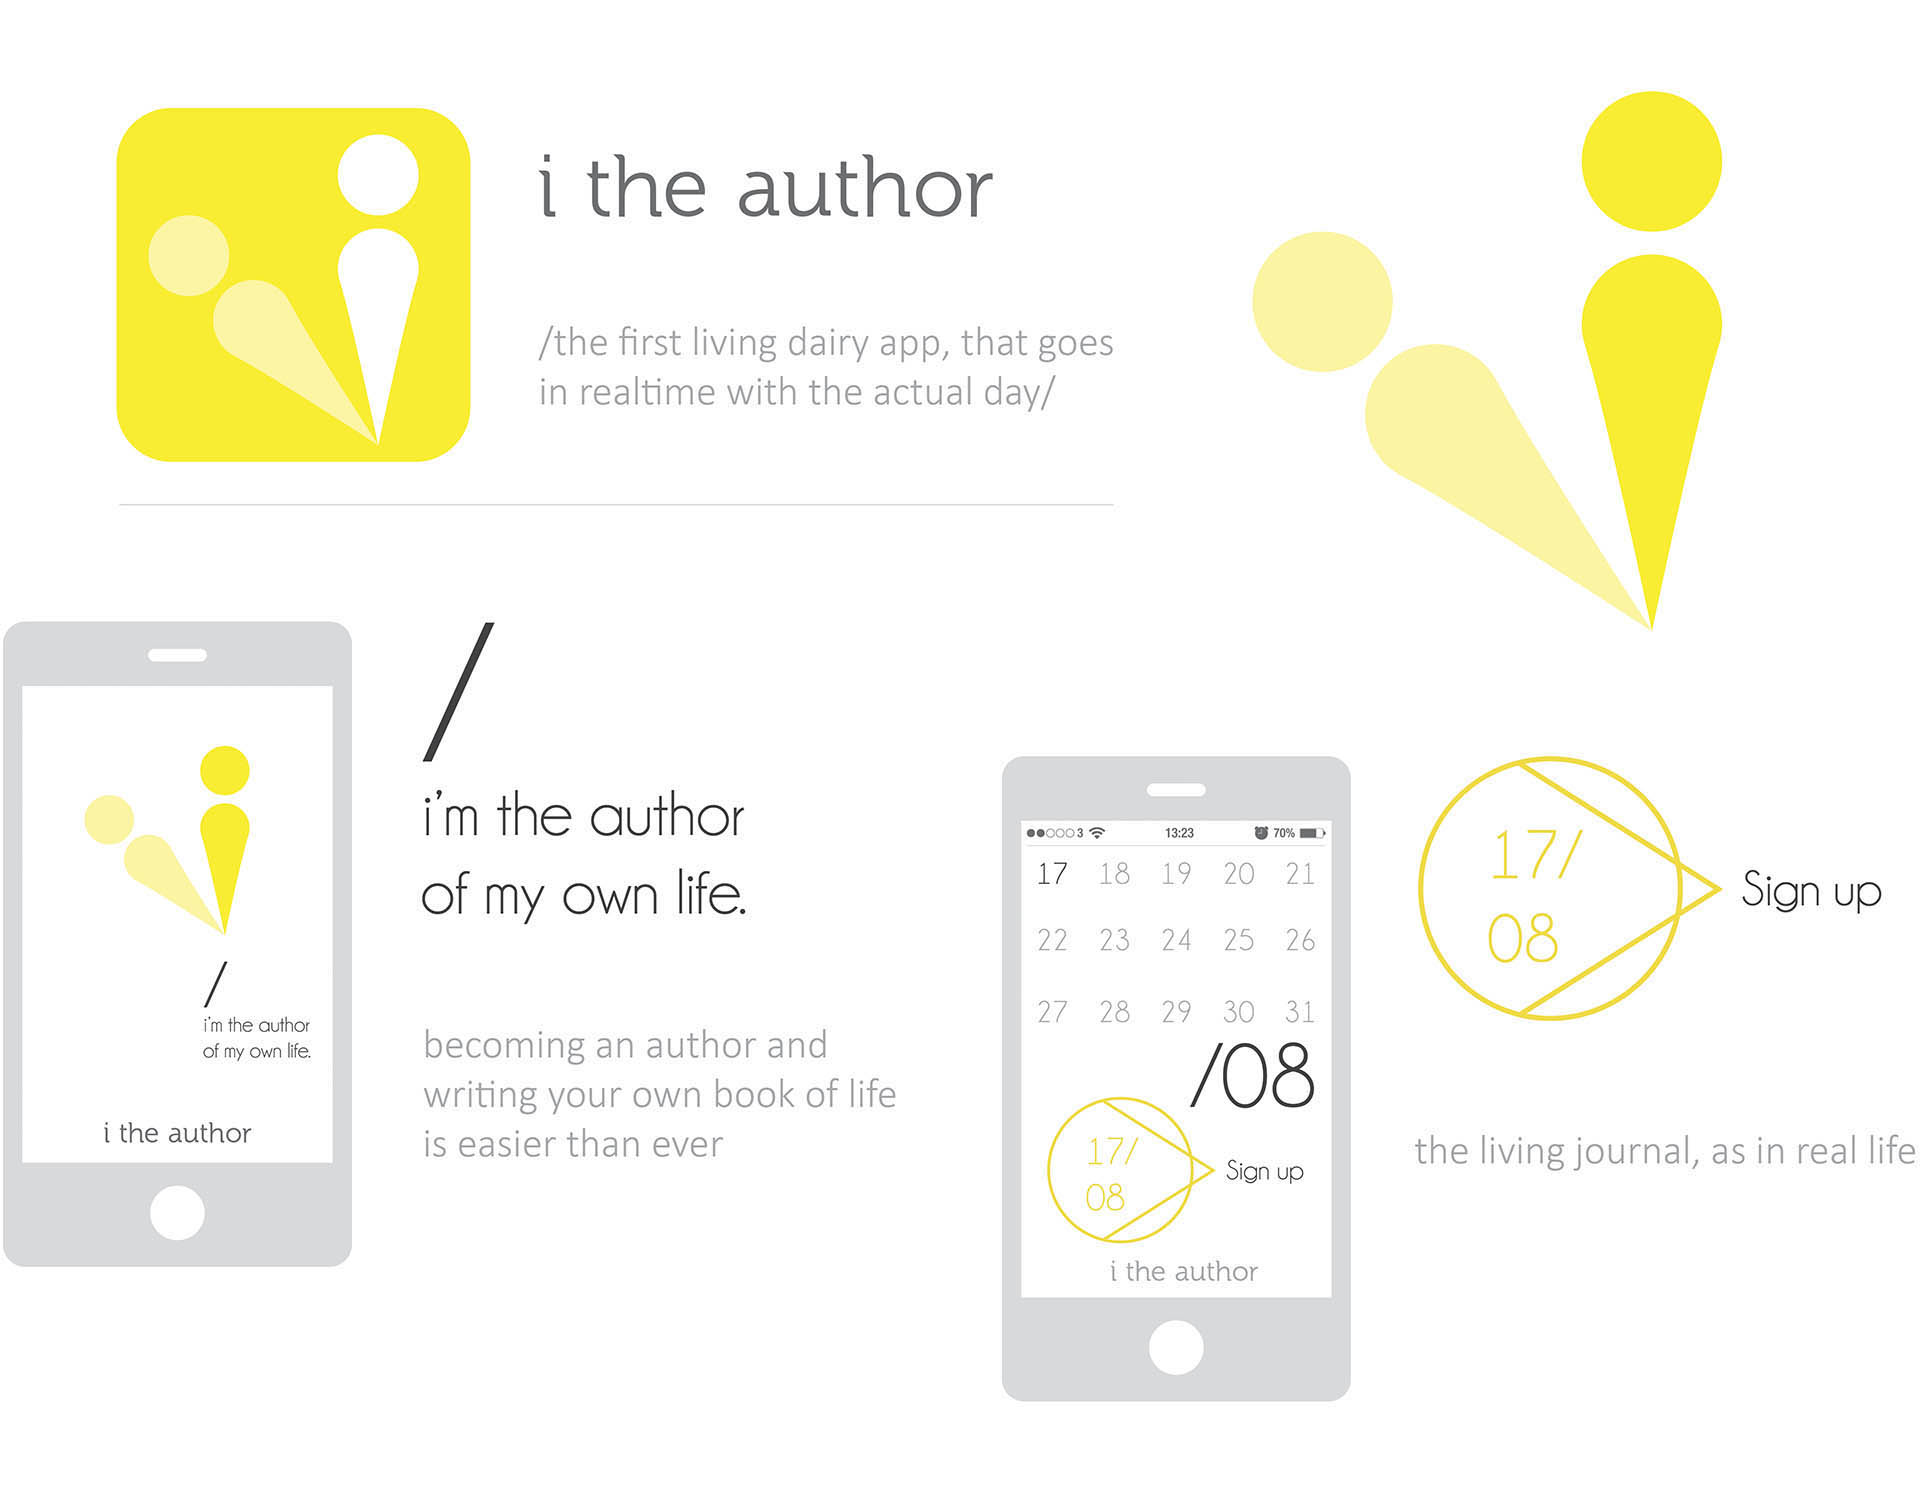 i the author, a living dairy app, that goes in realtime with the actual day